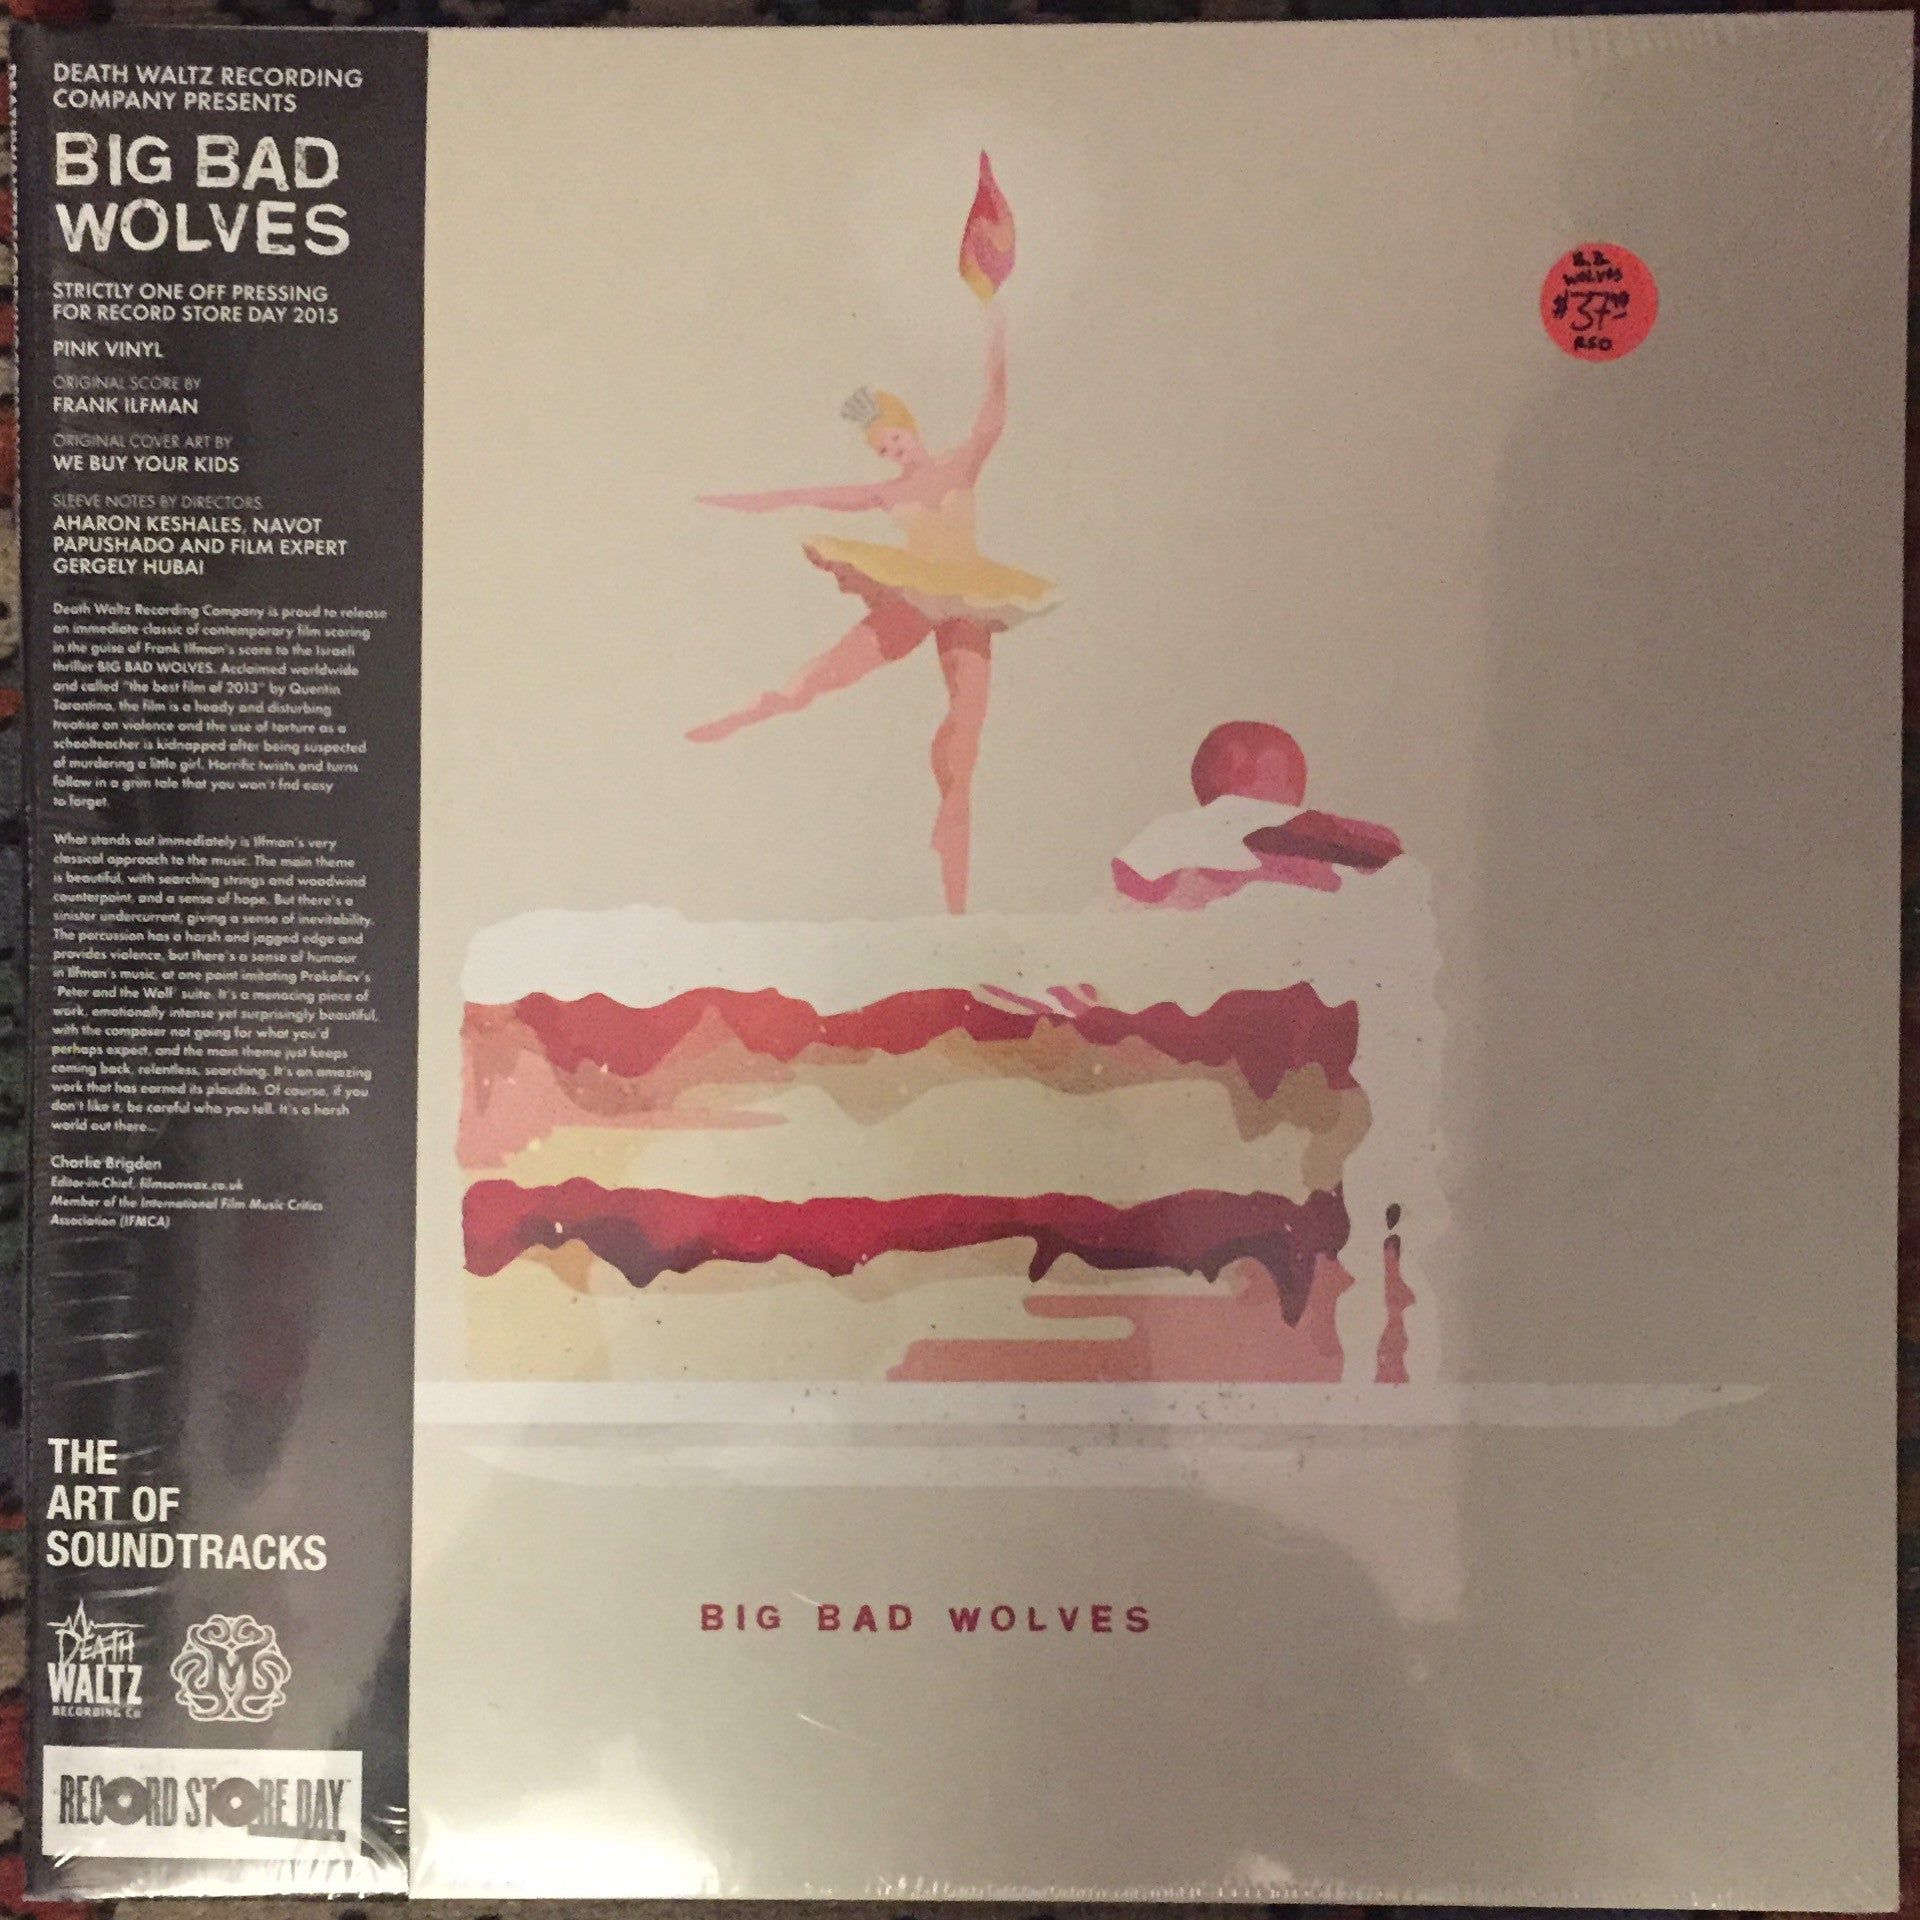 OST - Big Bad Wolves LP - Pink Vinyl